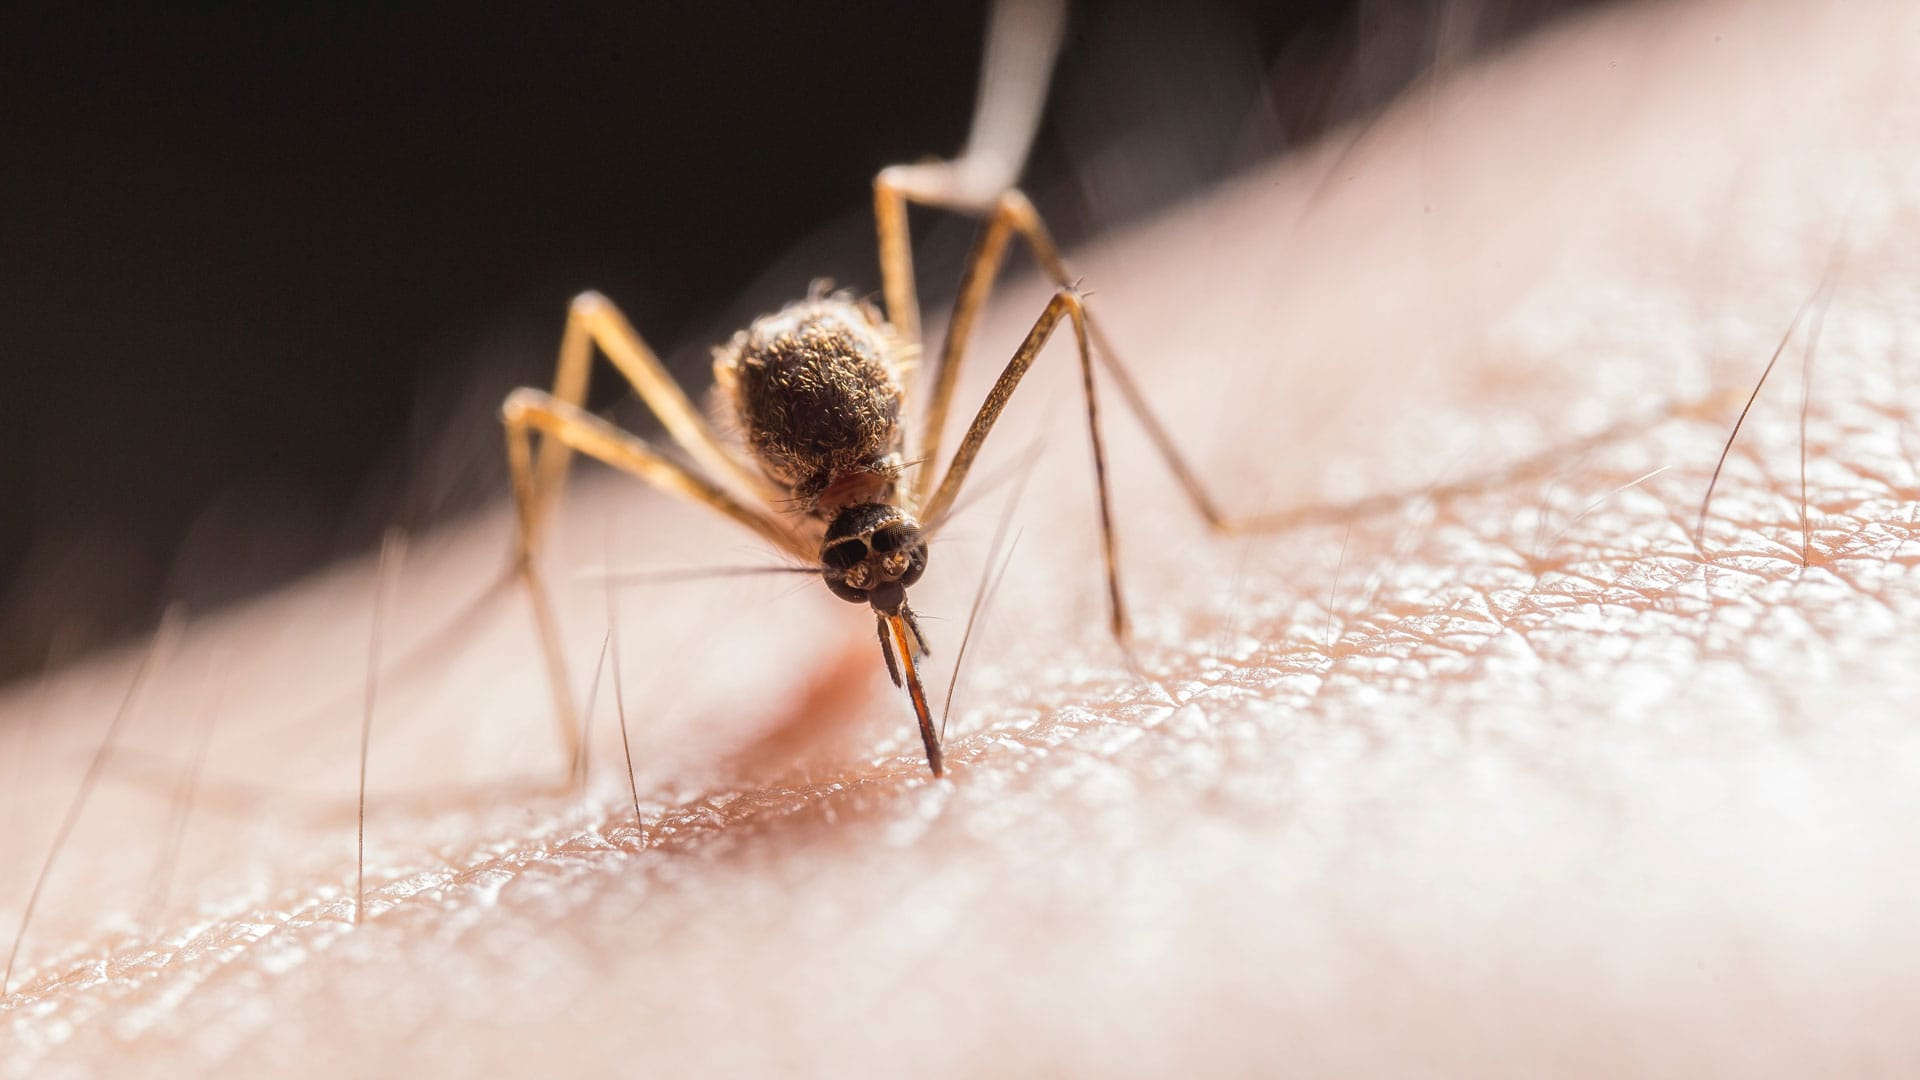 Protect Yourself From Zika Virus